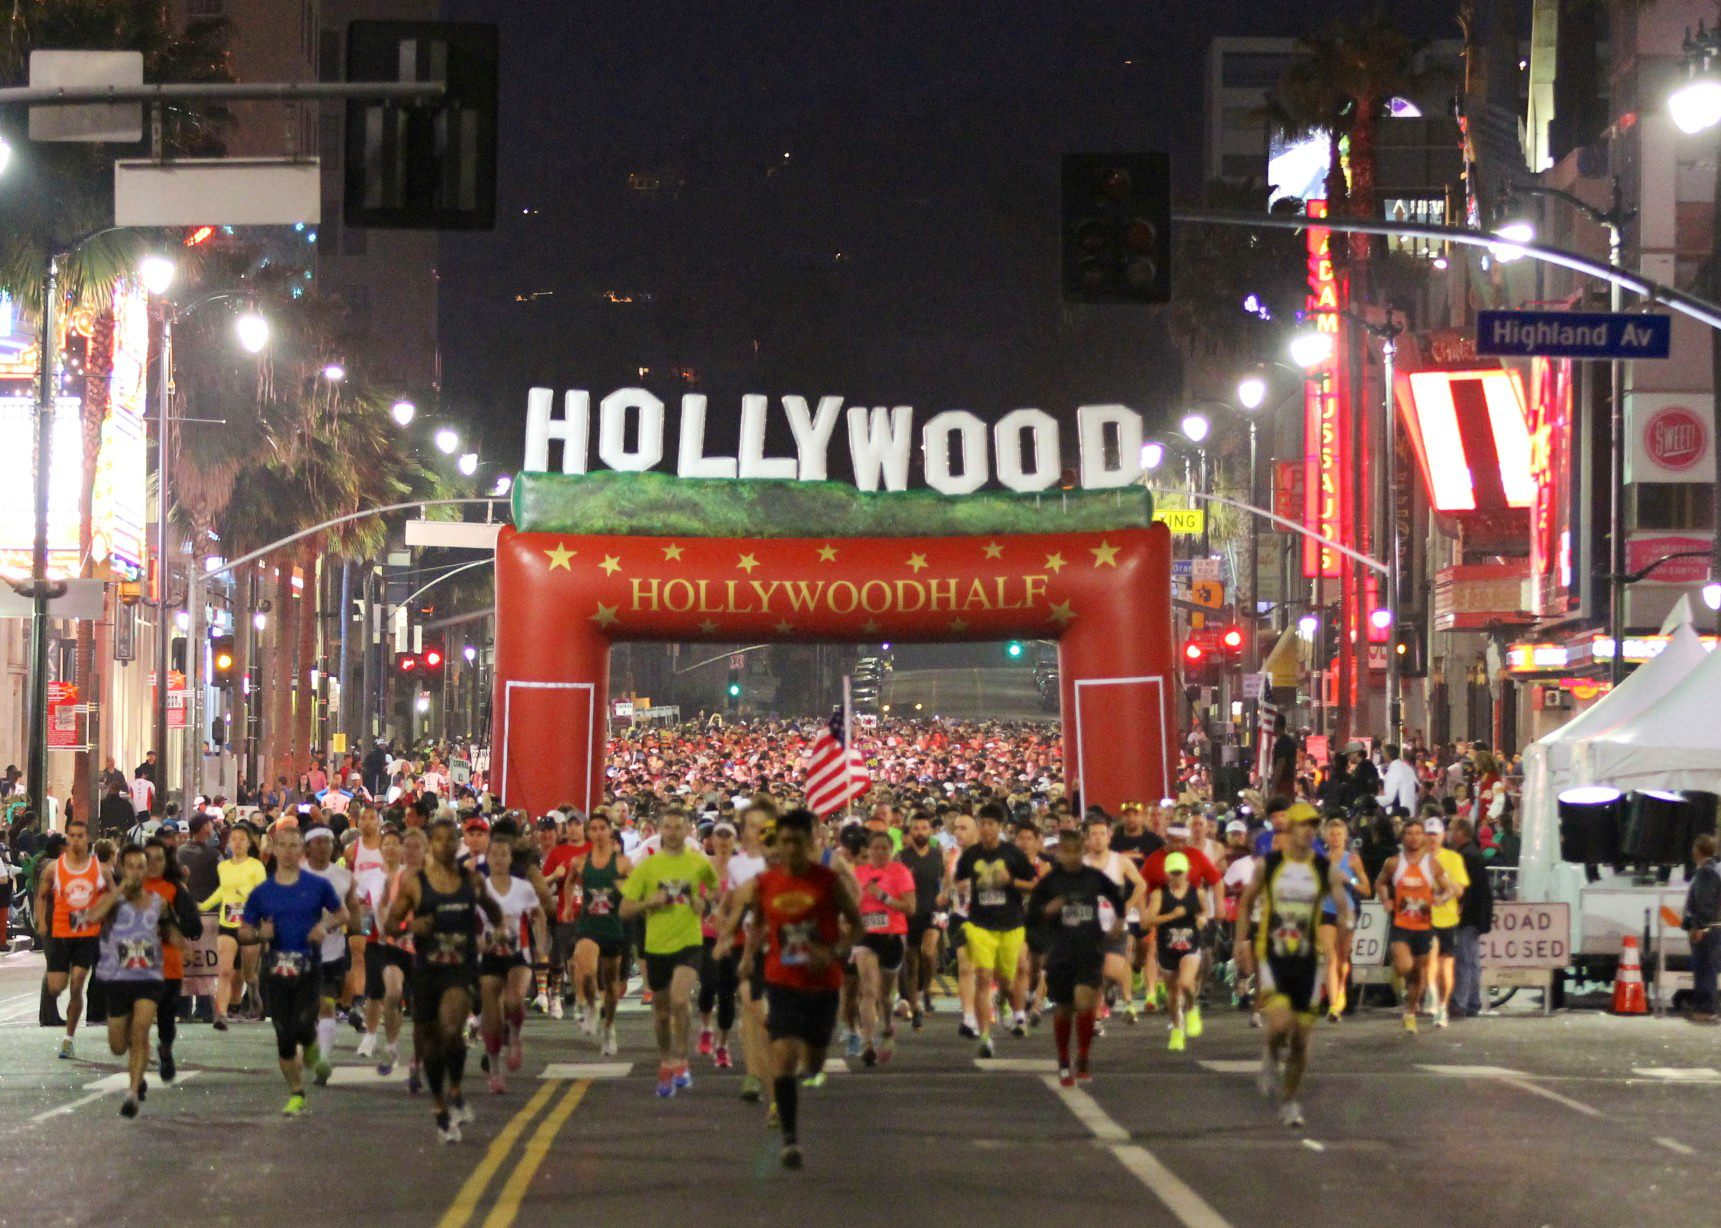 Hollywood half marathon hollywood california 472019 my best boulevard and the legendary sunset boulevard await the estimated 5000 or so runners expected to hit the streets at the hollywood half marathon malvernweather Images